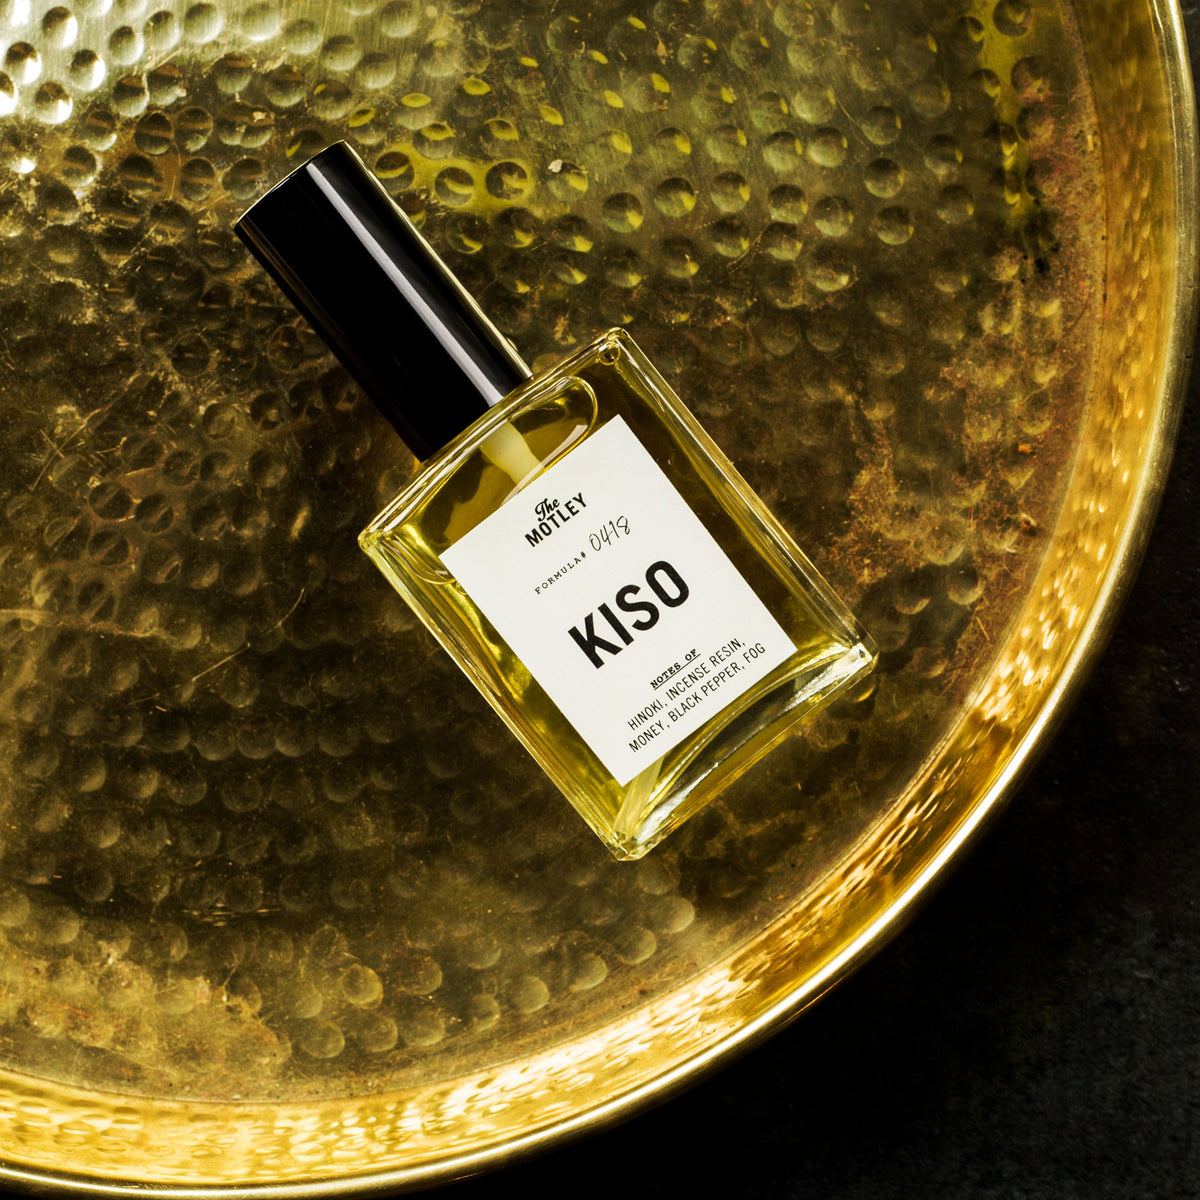 The Motley Kiso Cologne